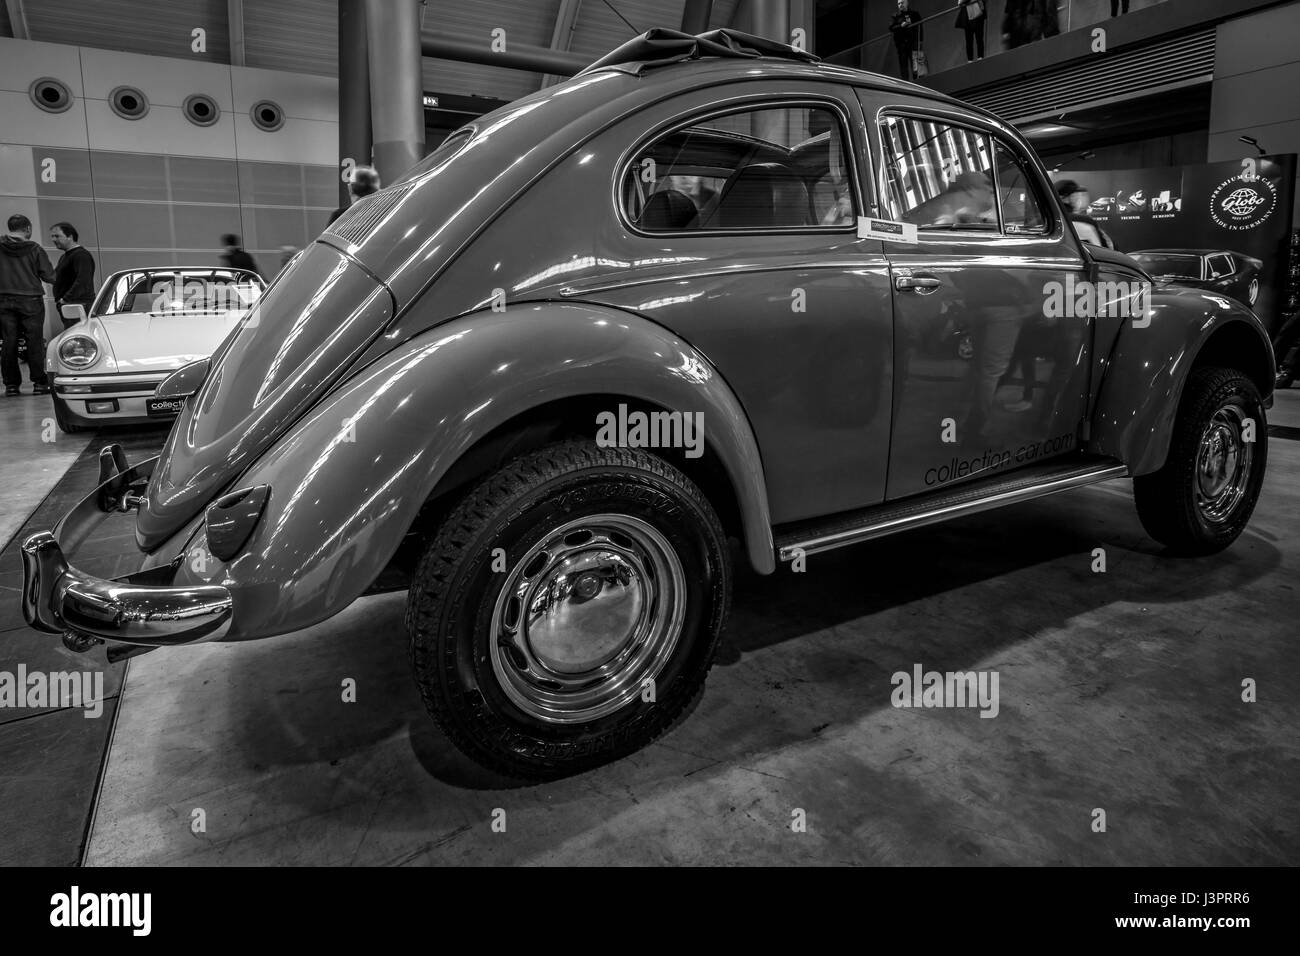 STUTTGART, GERMANY - MARCH 03, 2017: Subcompact Volkswagen Beetle, 1973. Rear view. Black and white. Europe's - Stock Image